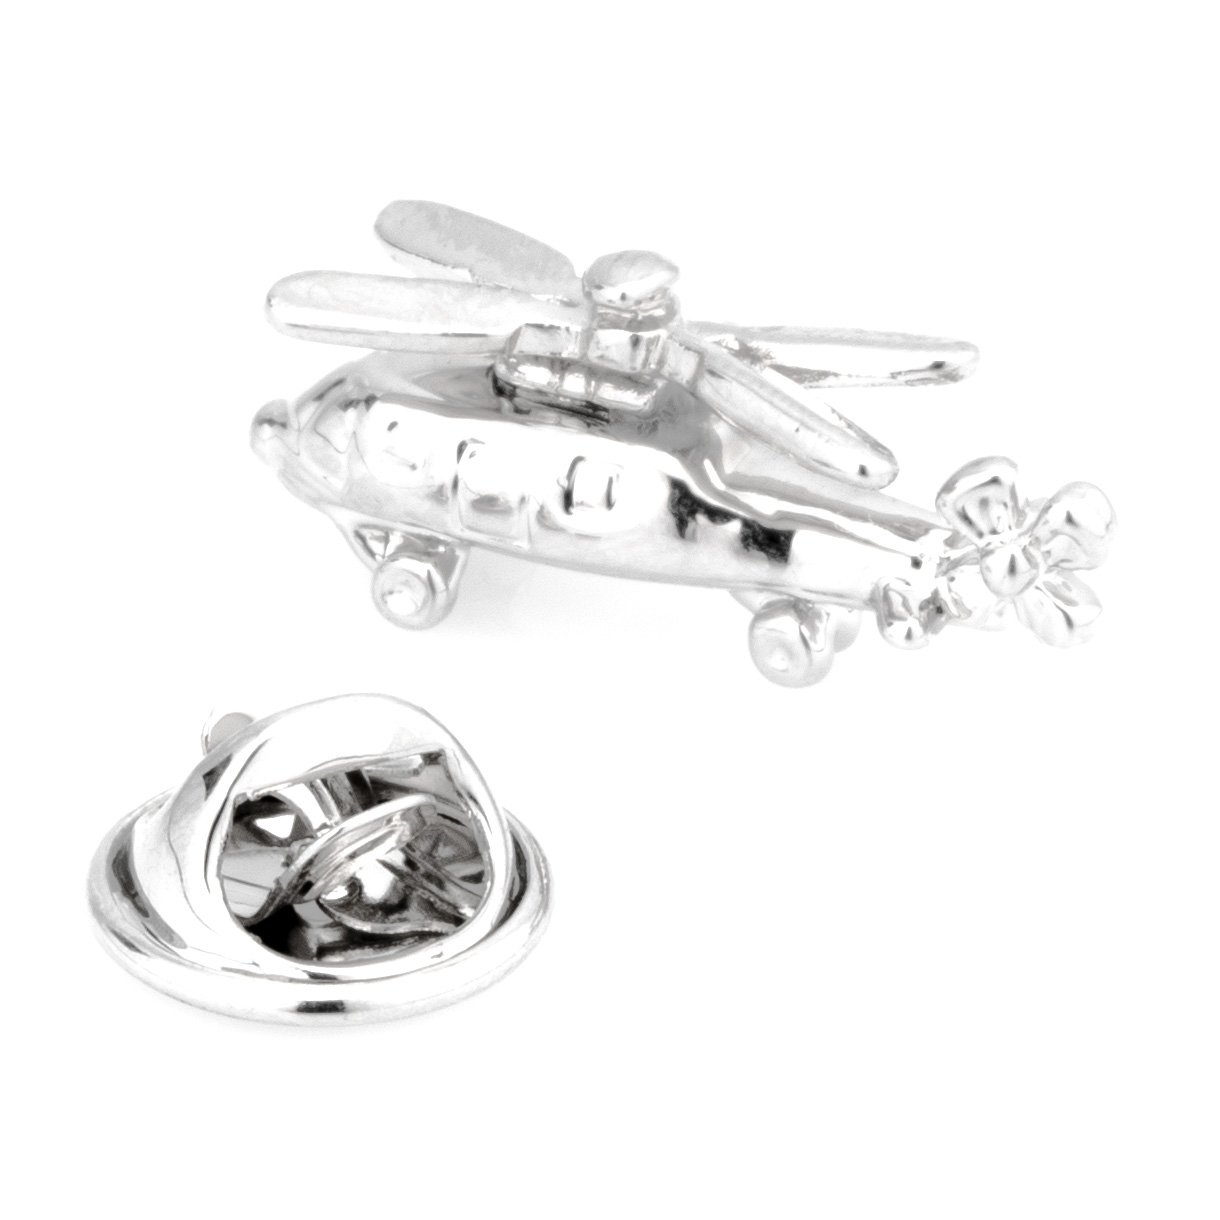 Silver Helicopter Lapel Pin